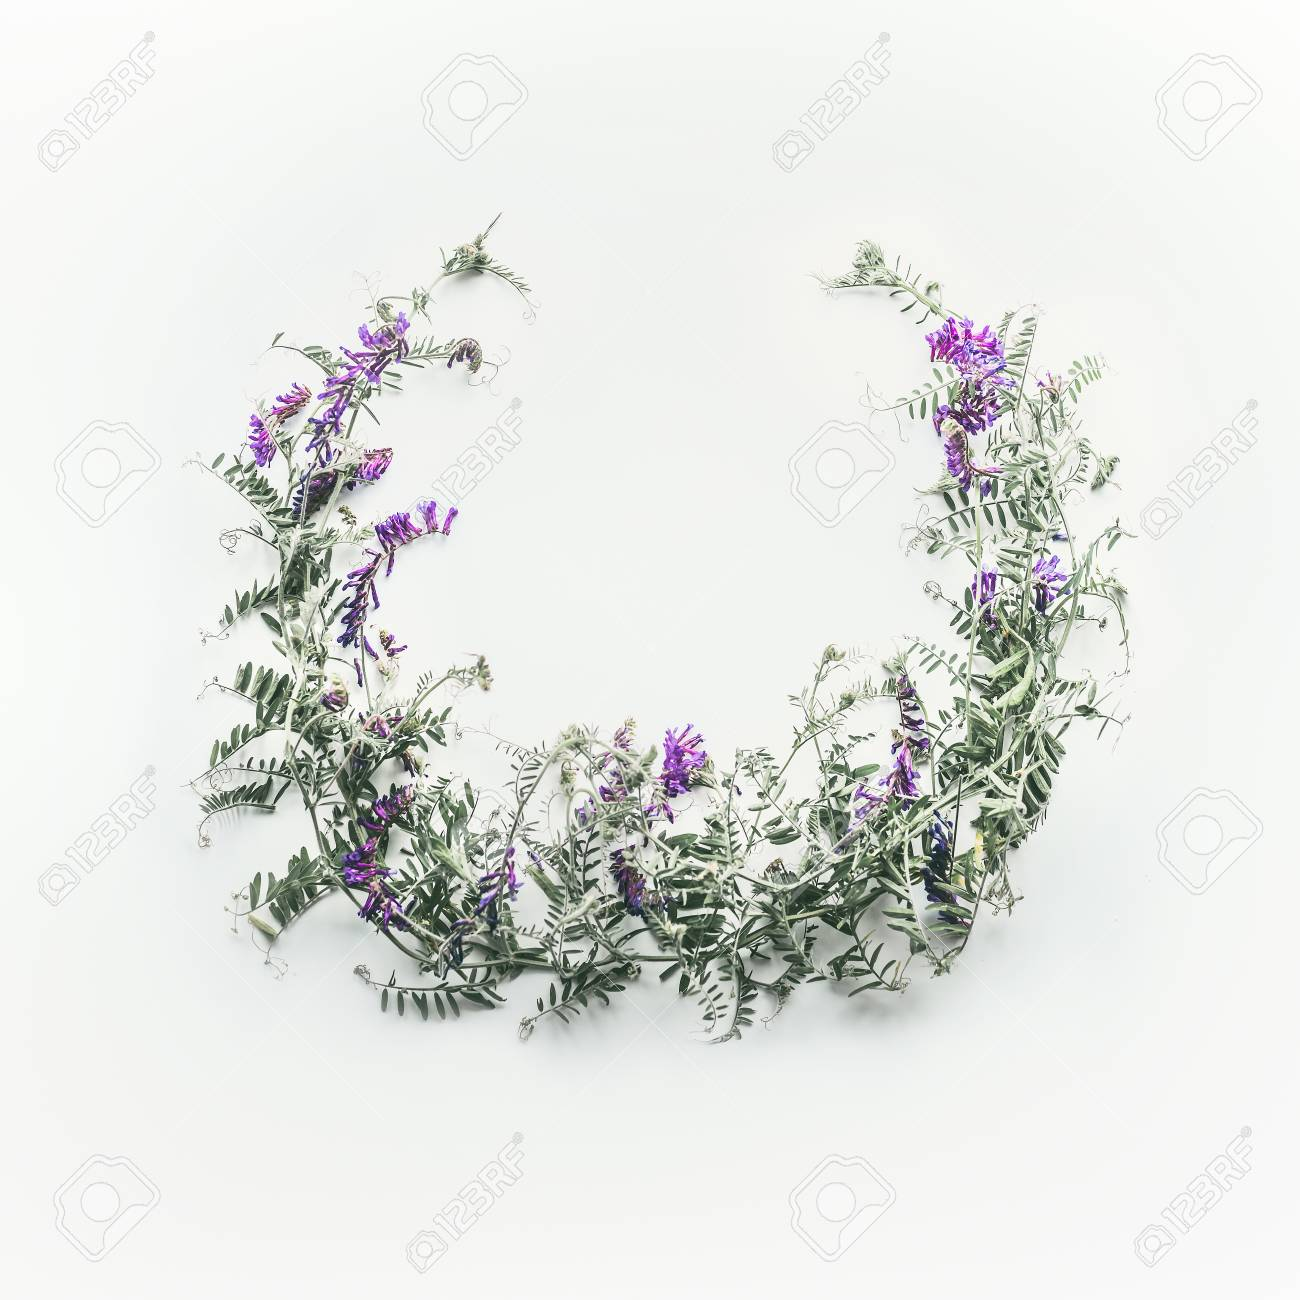 Wreath Made Of Wild Purple Flowers With Leaves On White Background